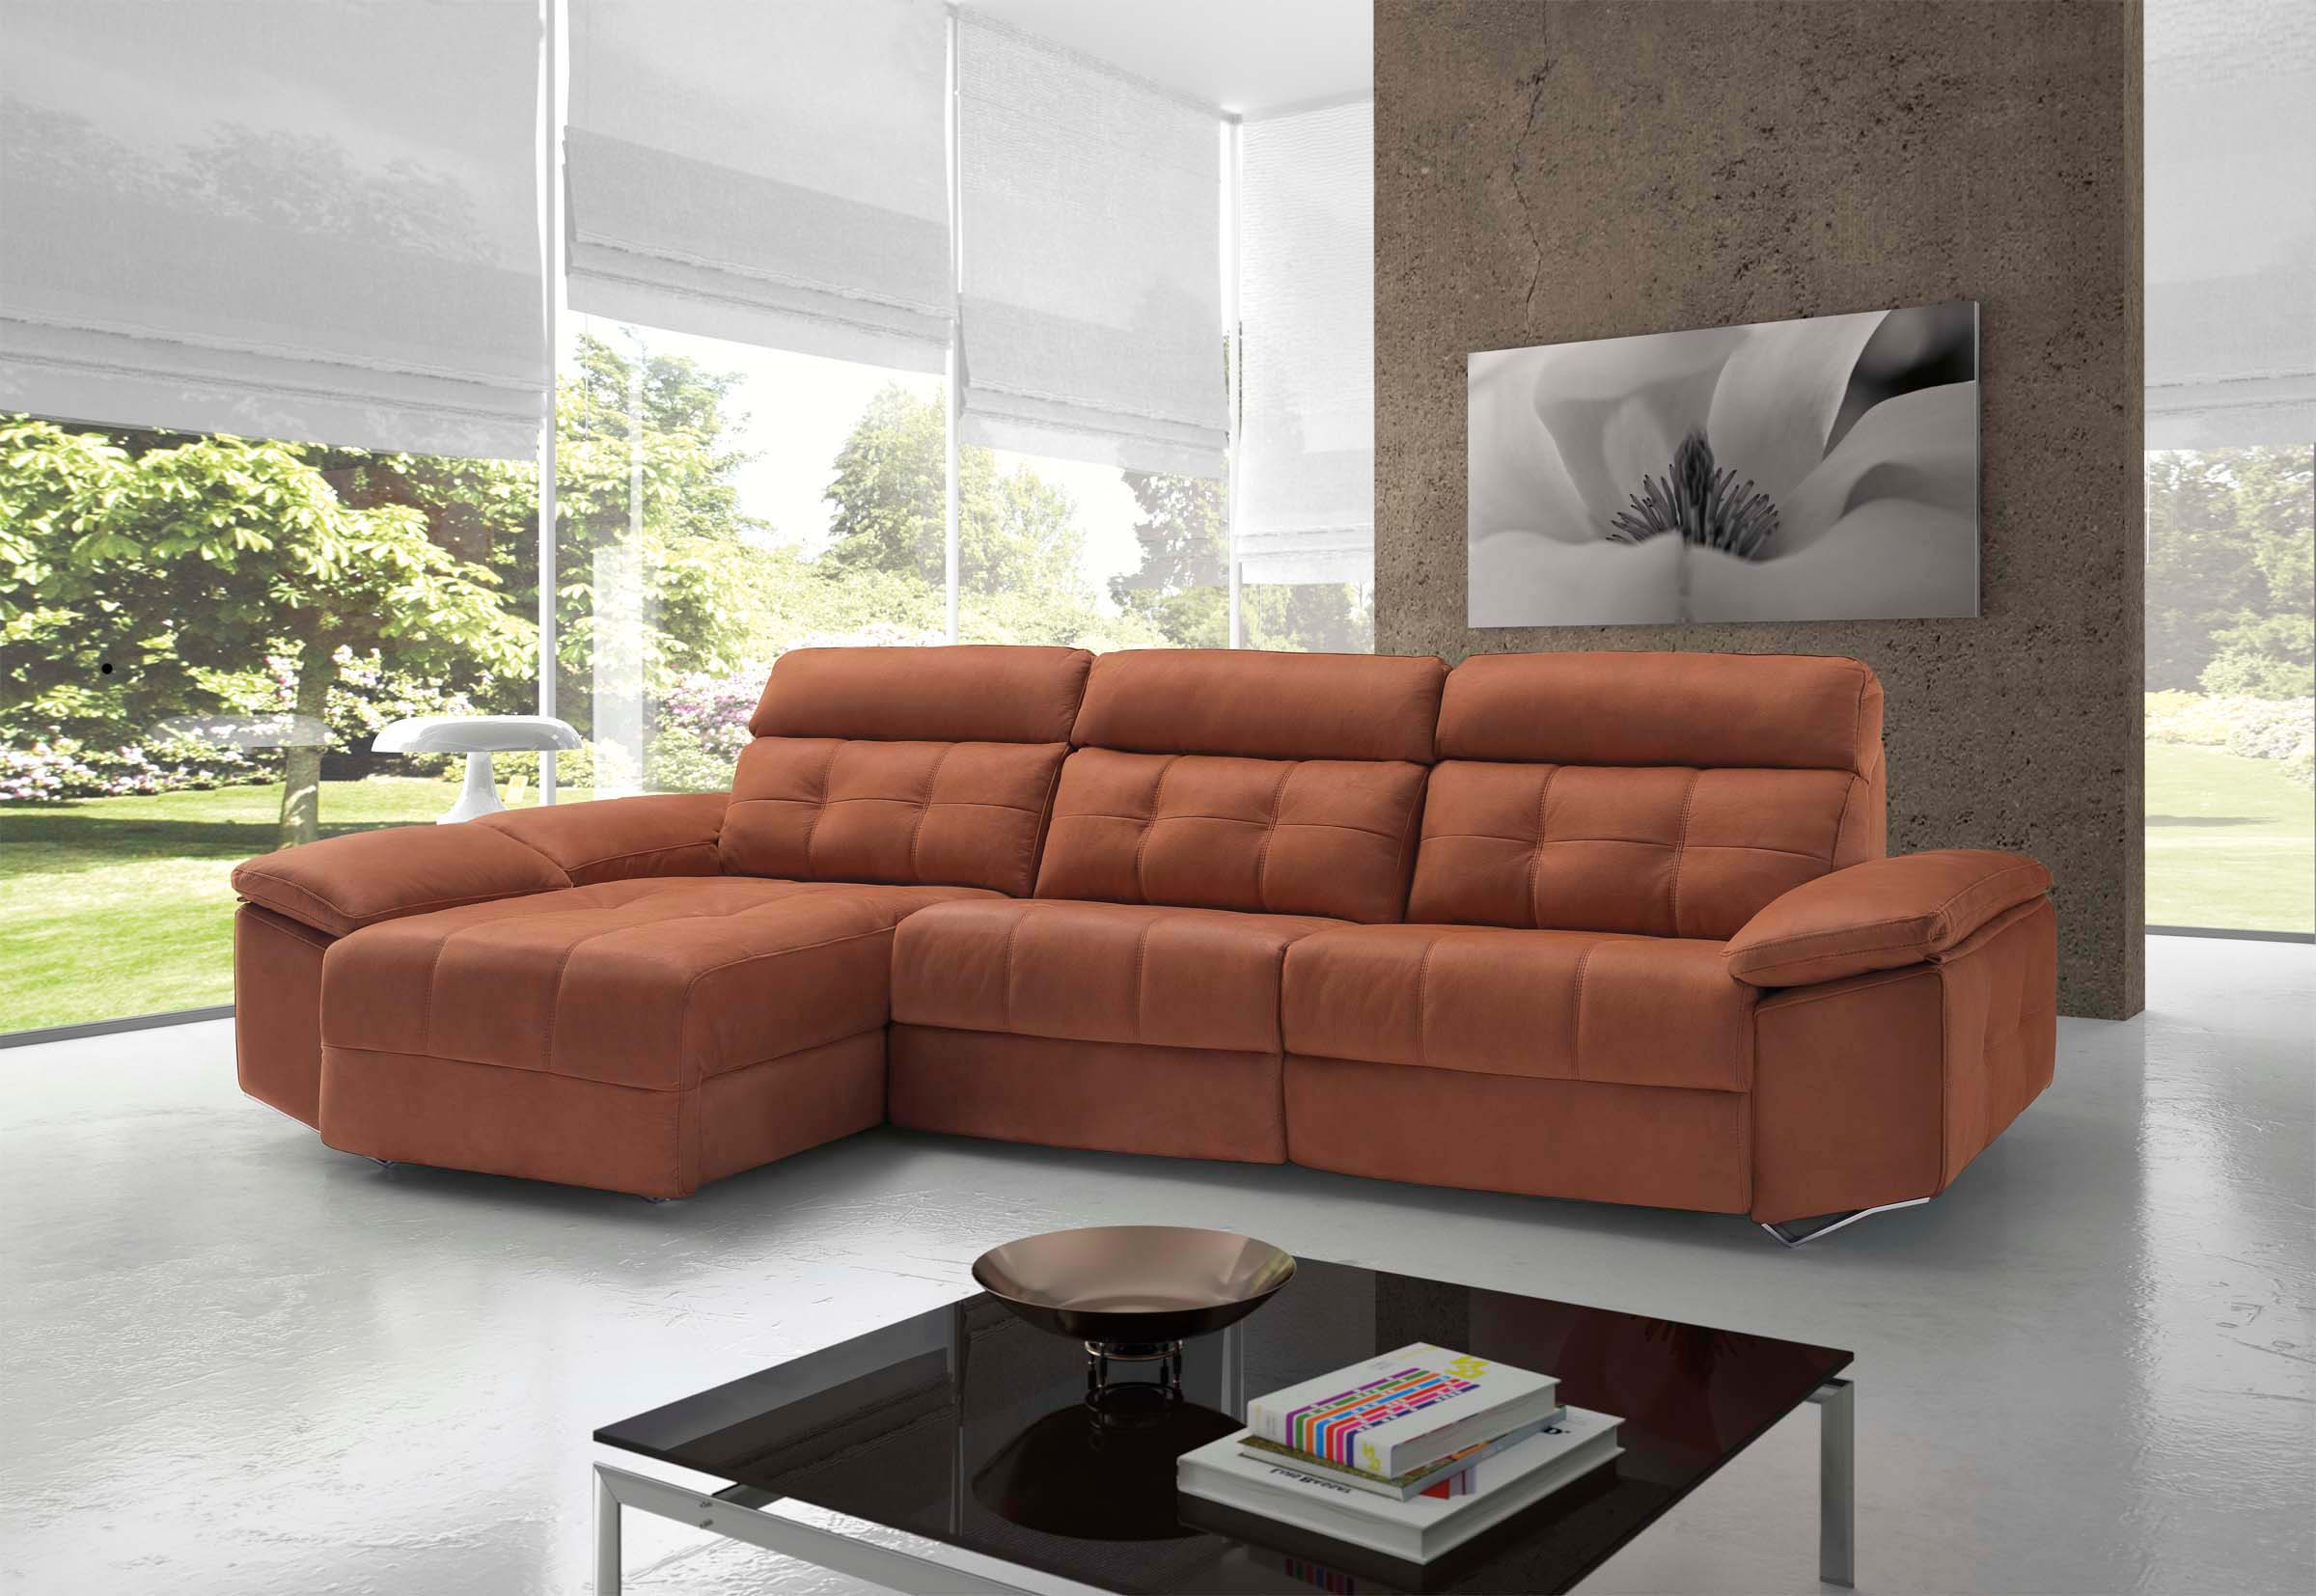 star sofa manufacturer black friday leather deals uk alaska collection furniture from spain